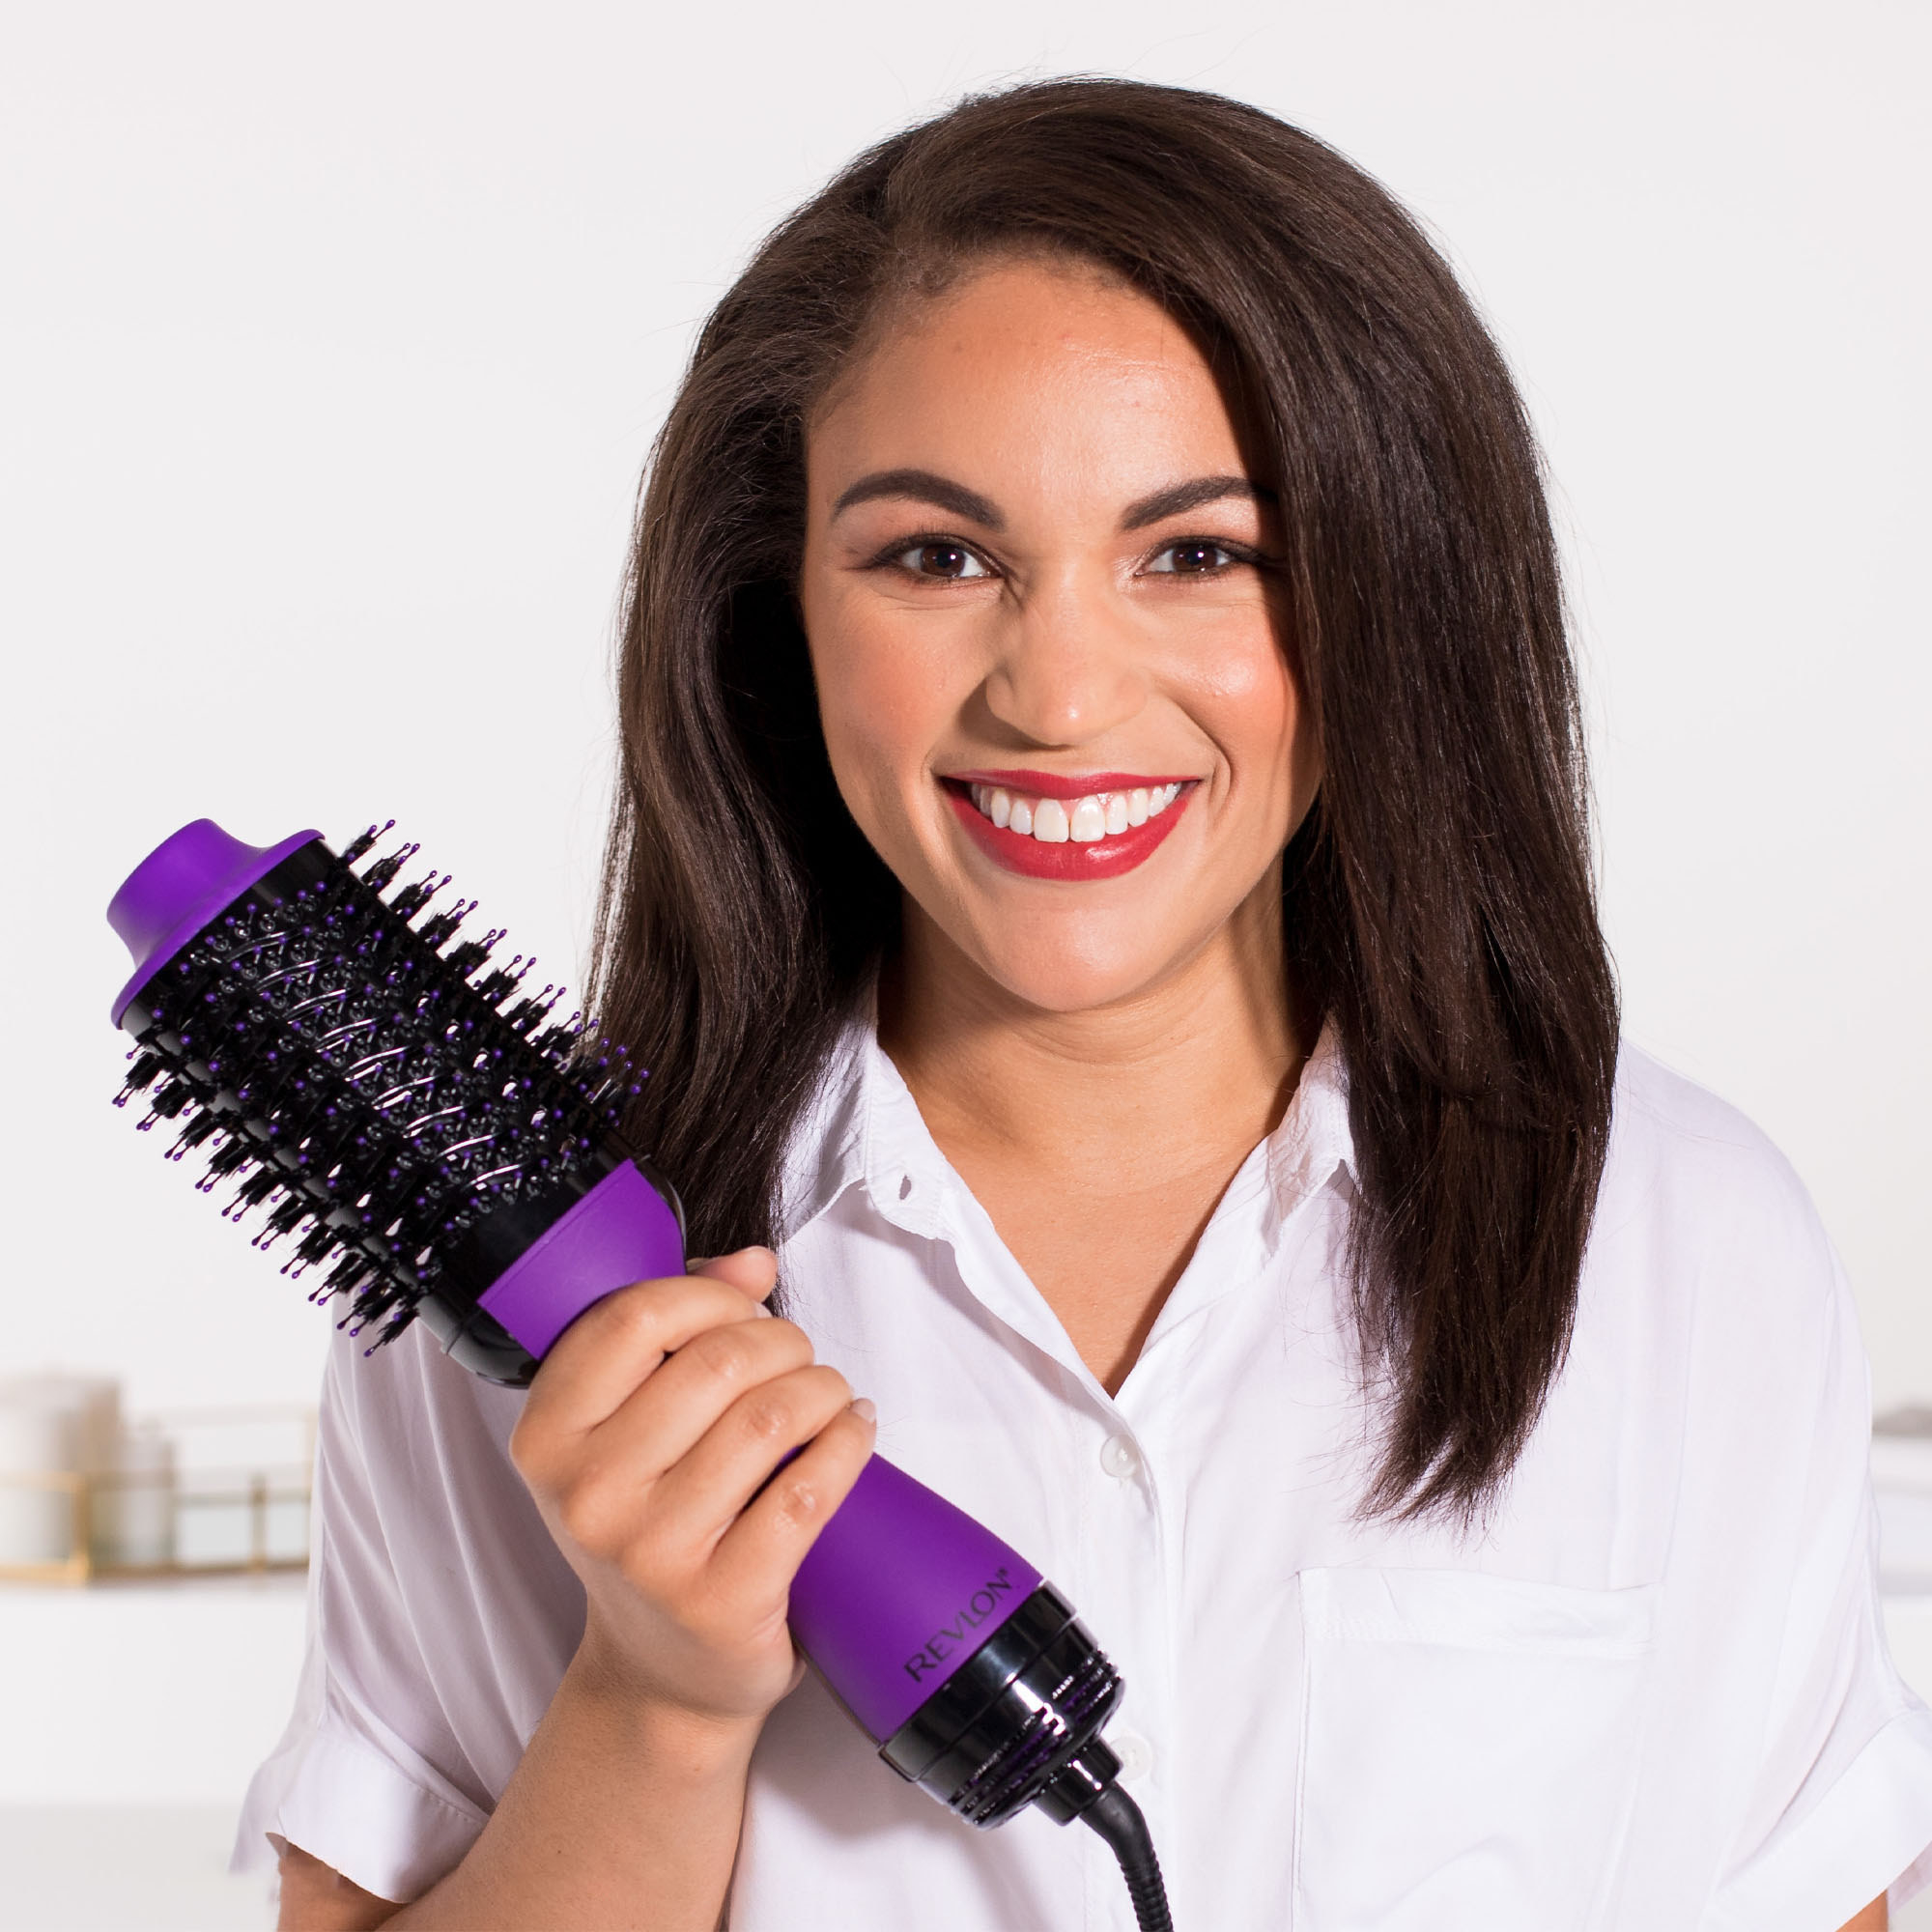 Model holding the dryer brush